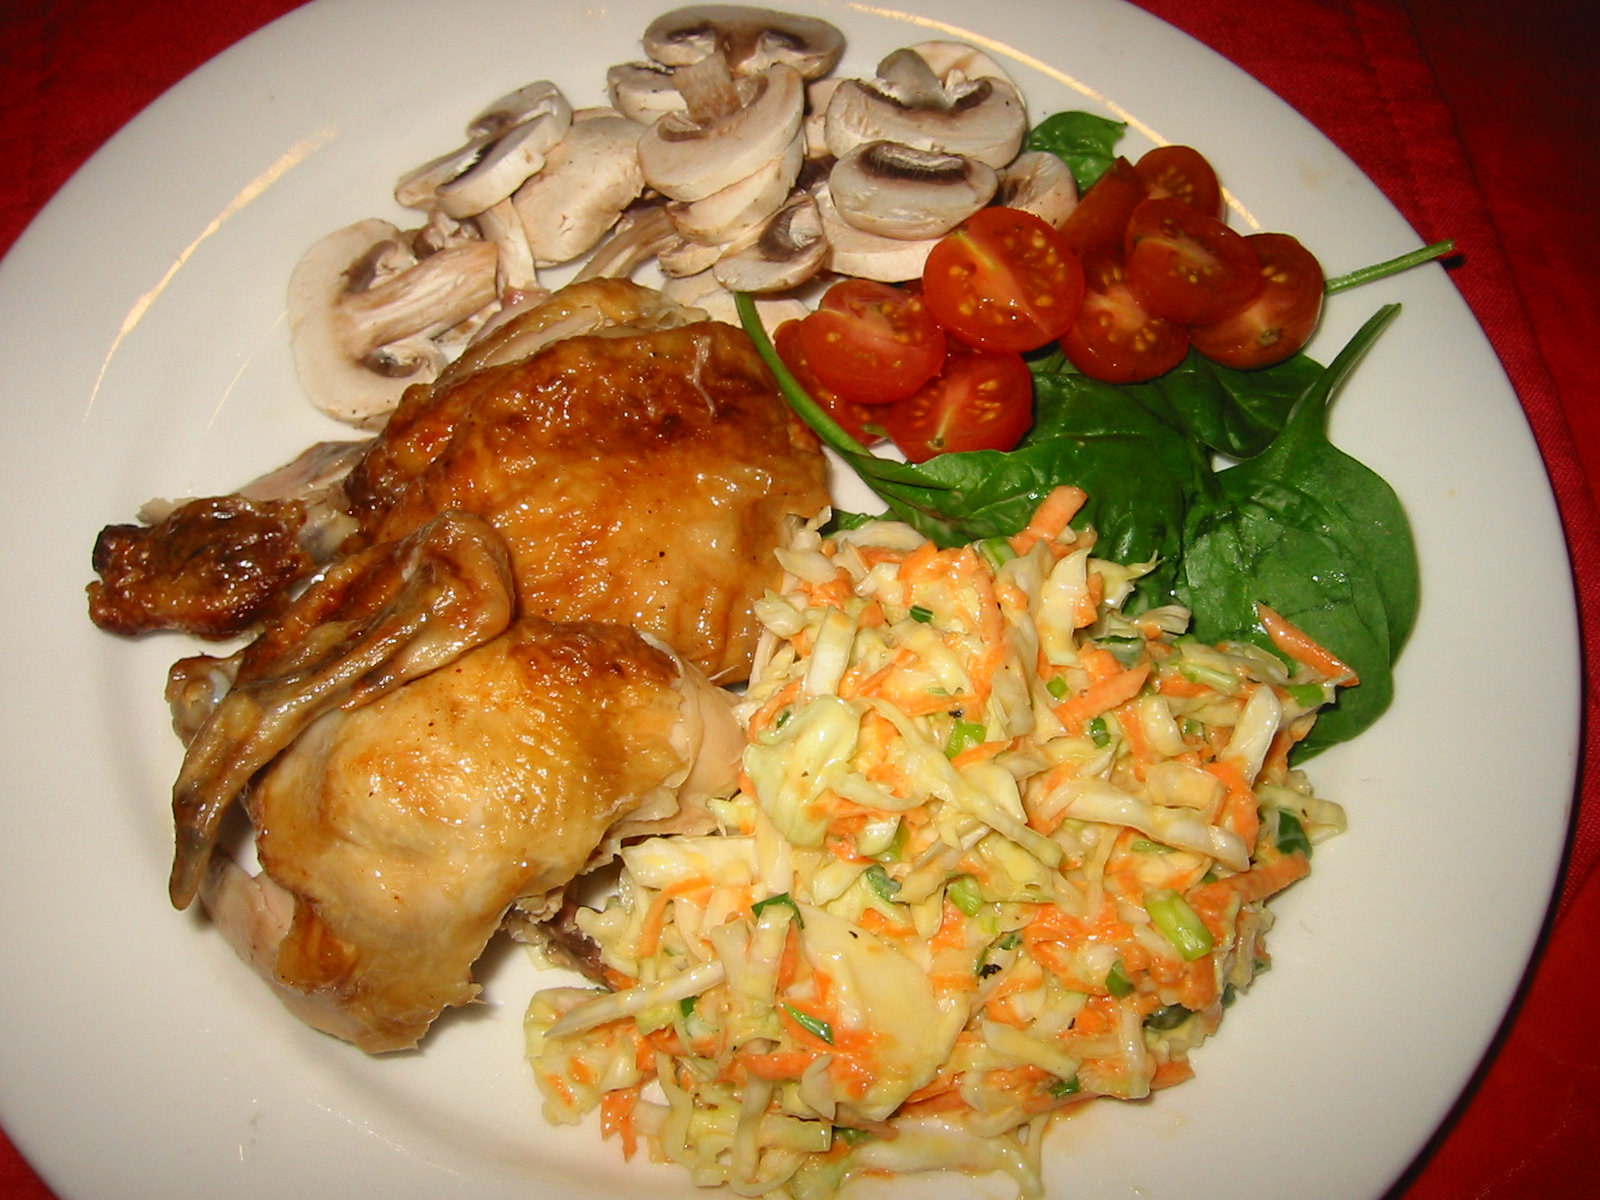 BBQ Chook with coleslaw and other salads